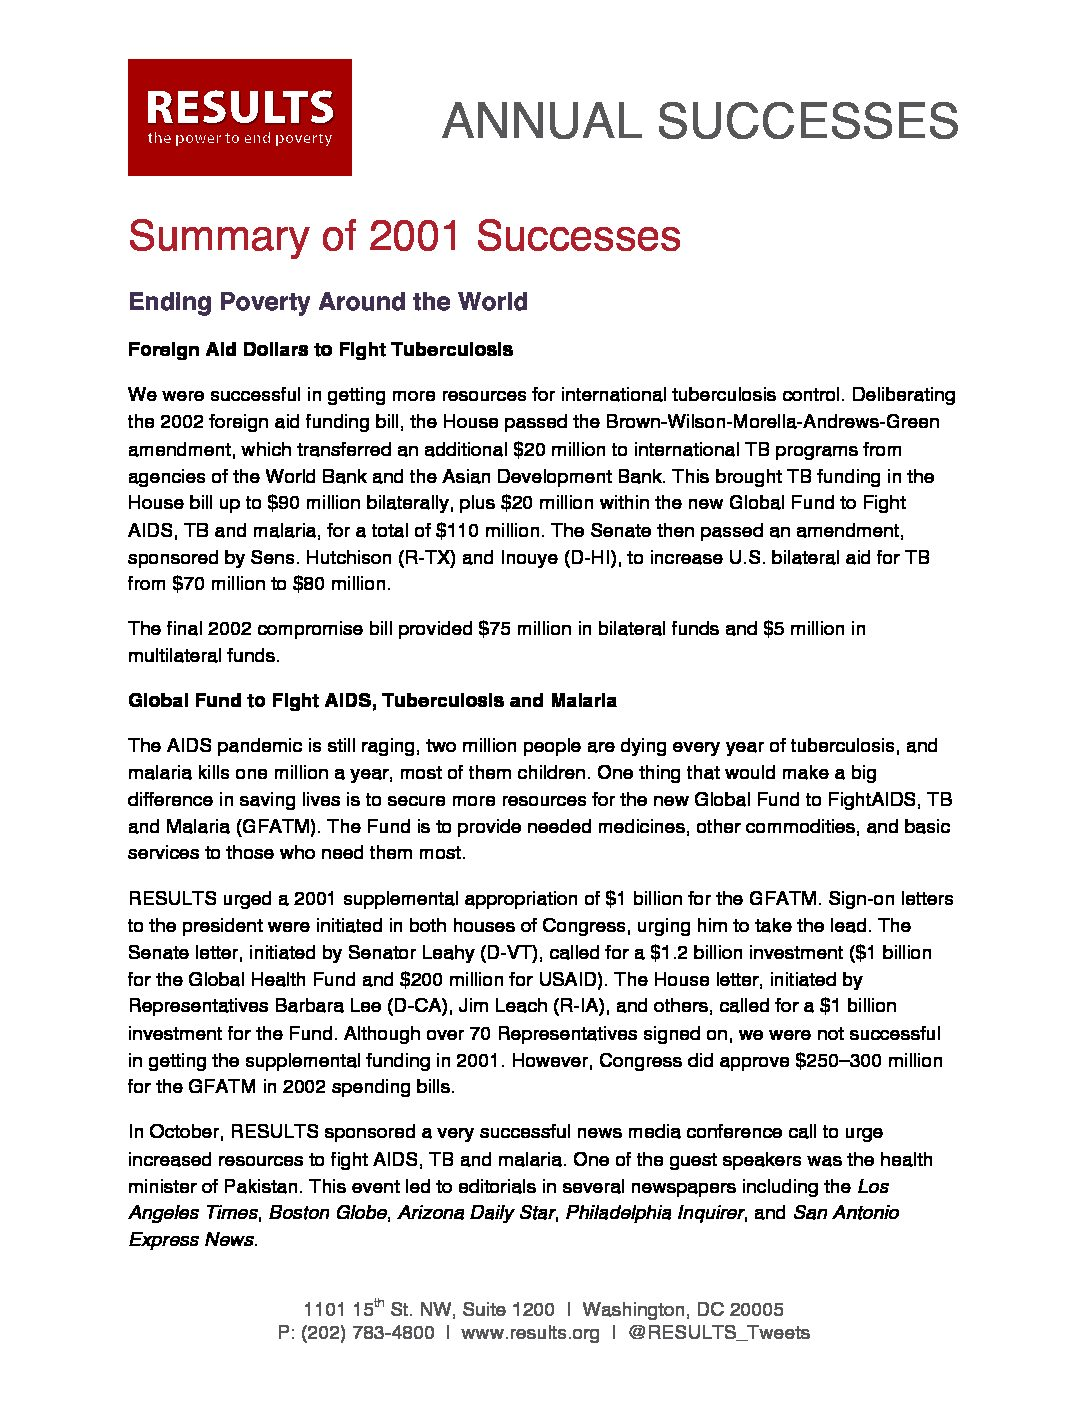 Annual Successes 2001